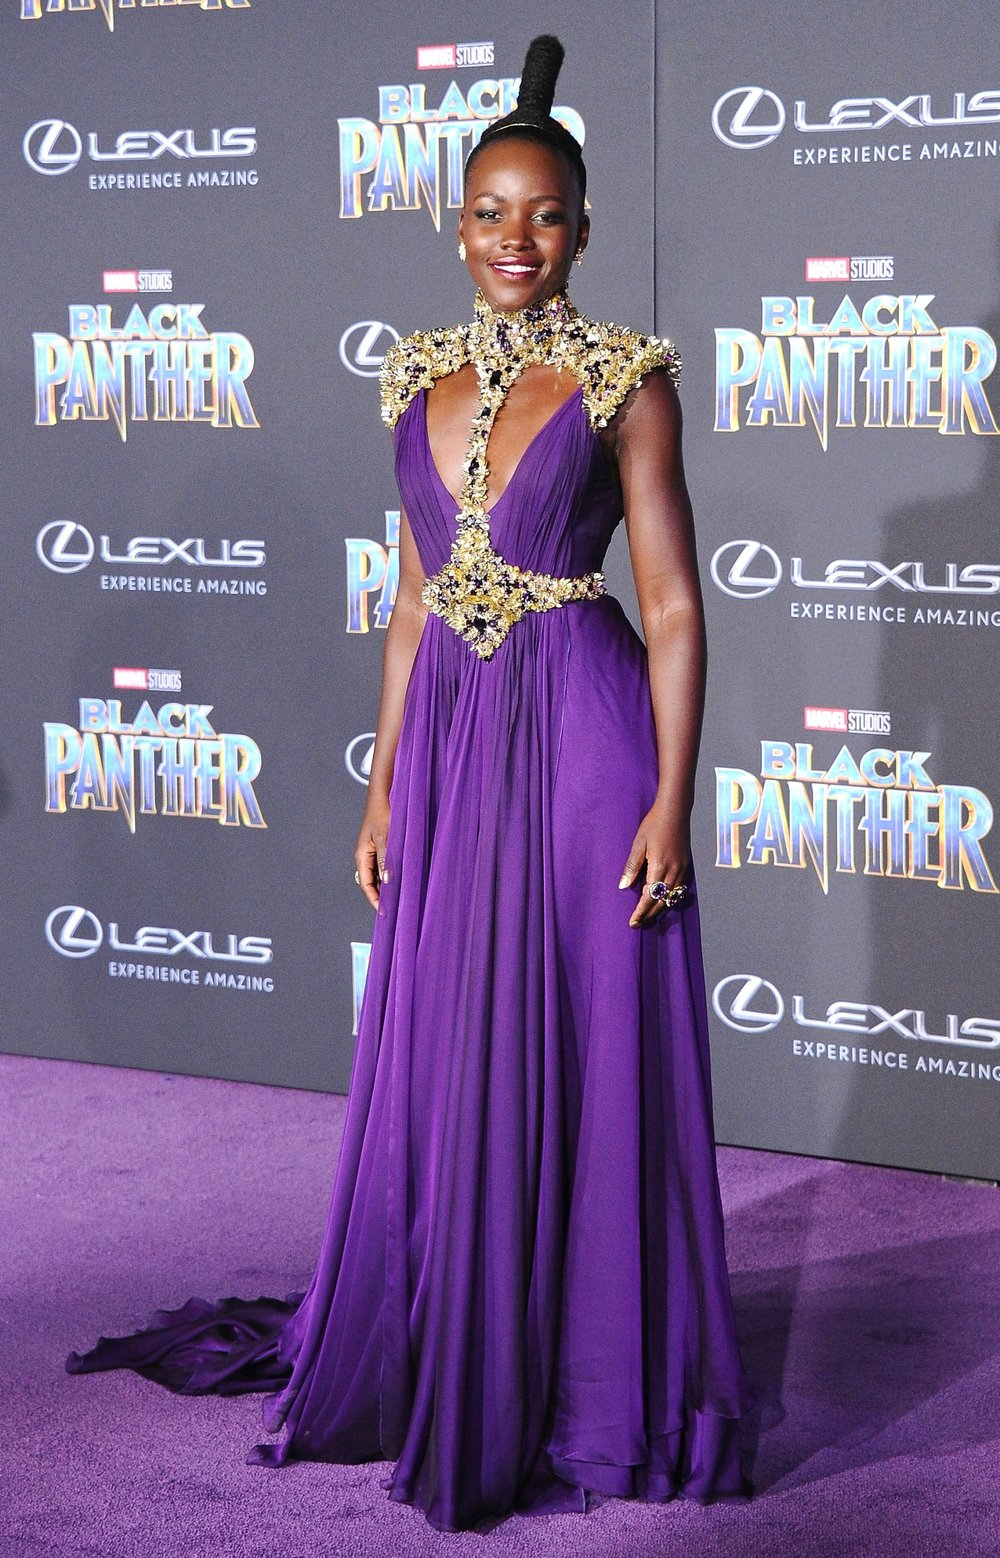 Lupita Nyong'o on the Red Carpet. Image Source:  US Magazine